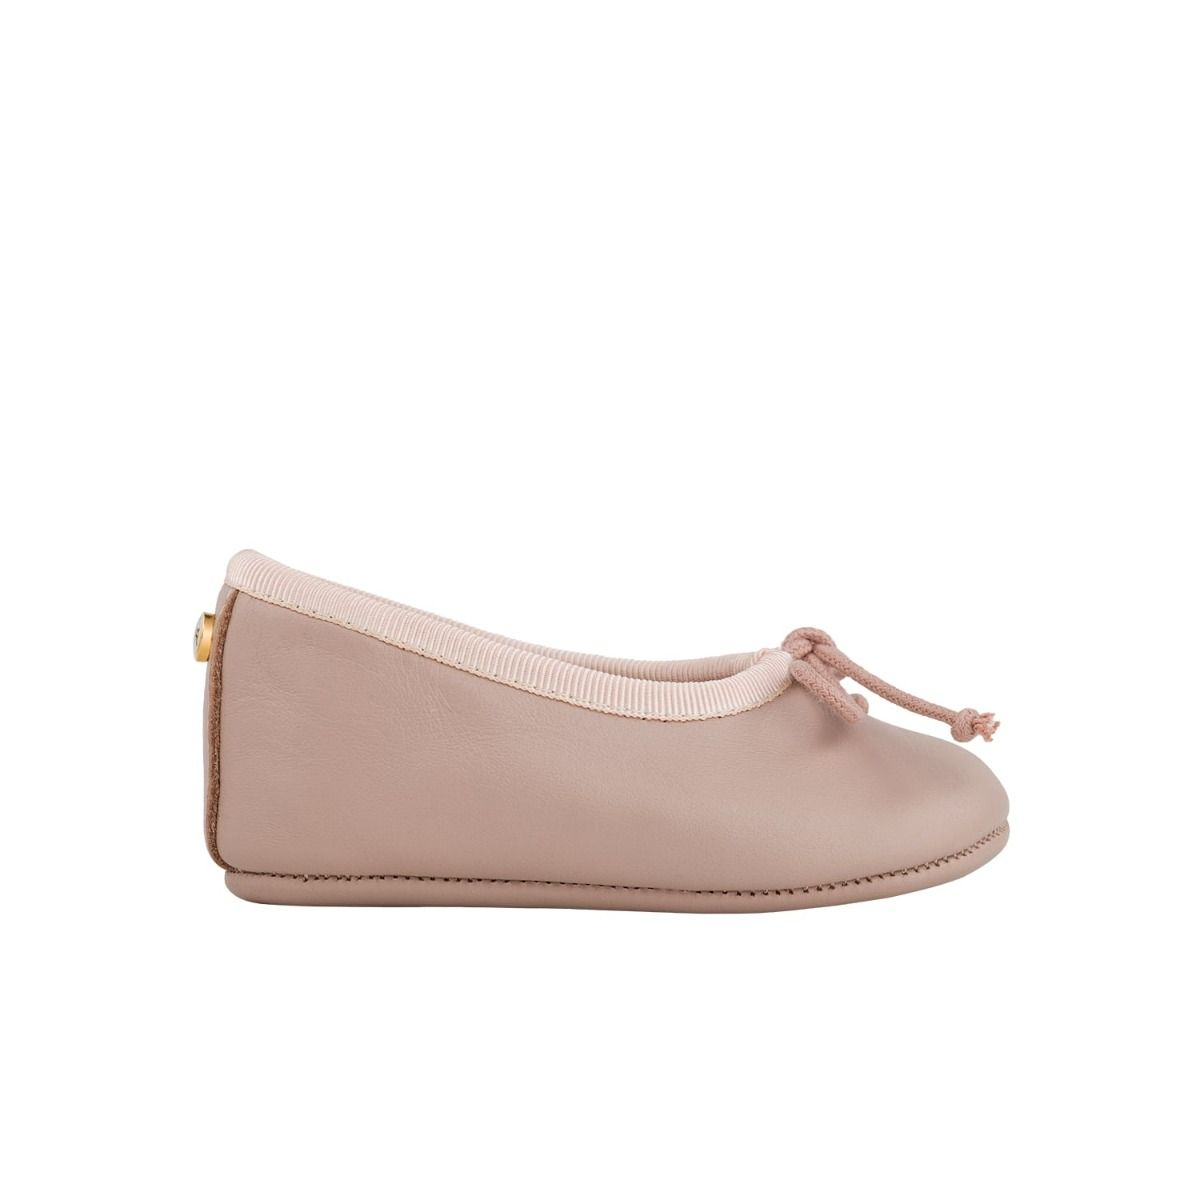 Baby ballet flats in pale pink leather with bow detail in cord.